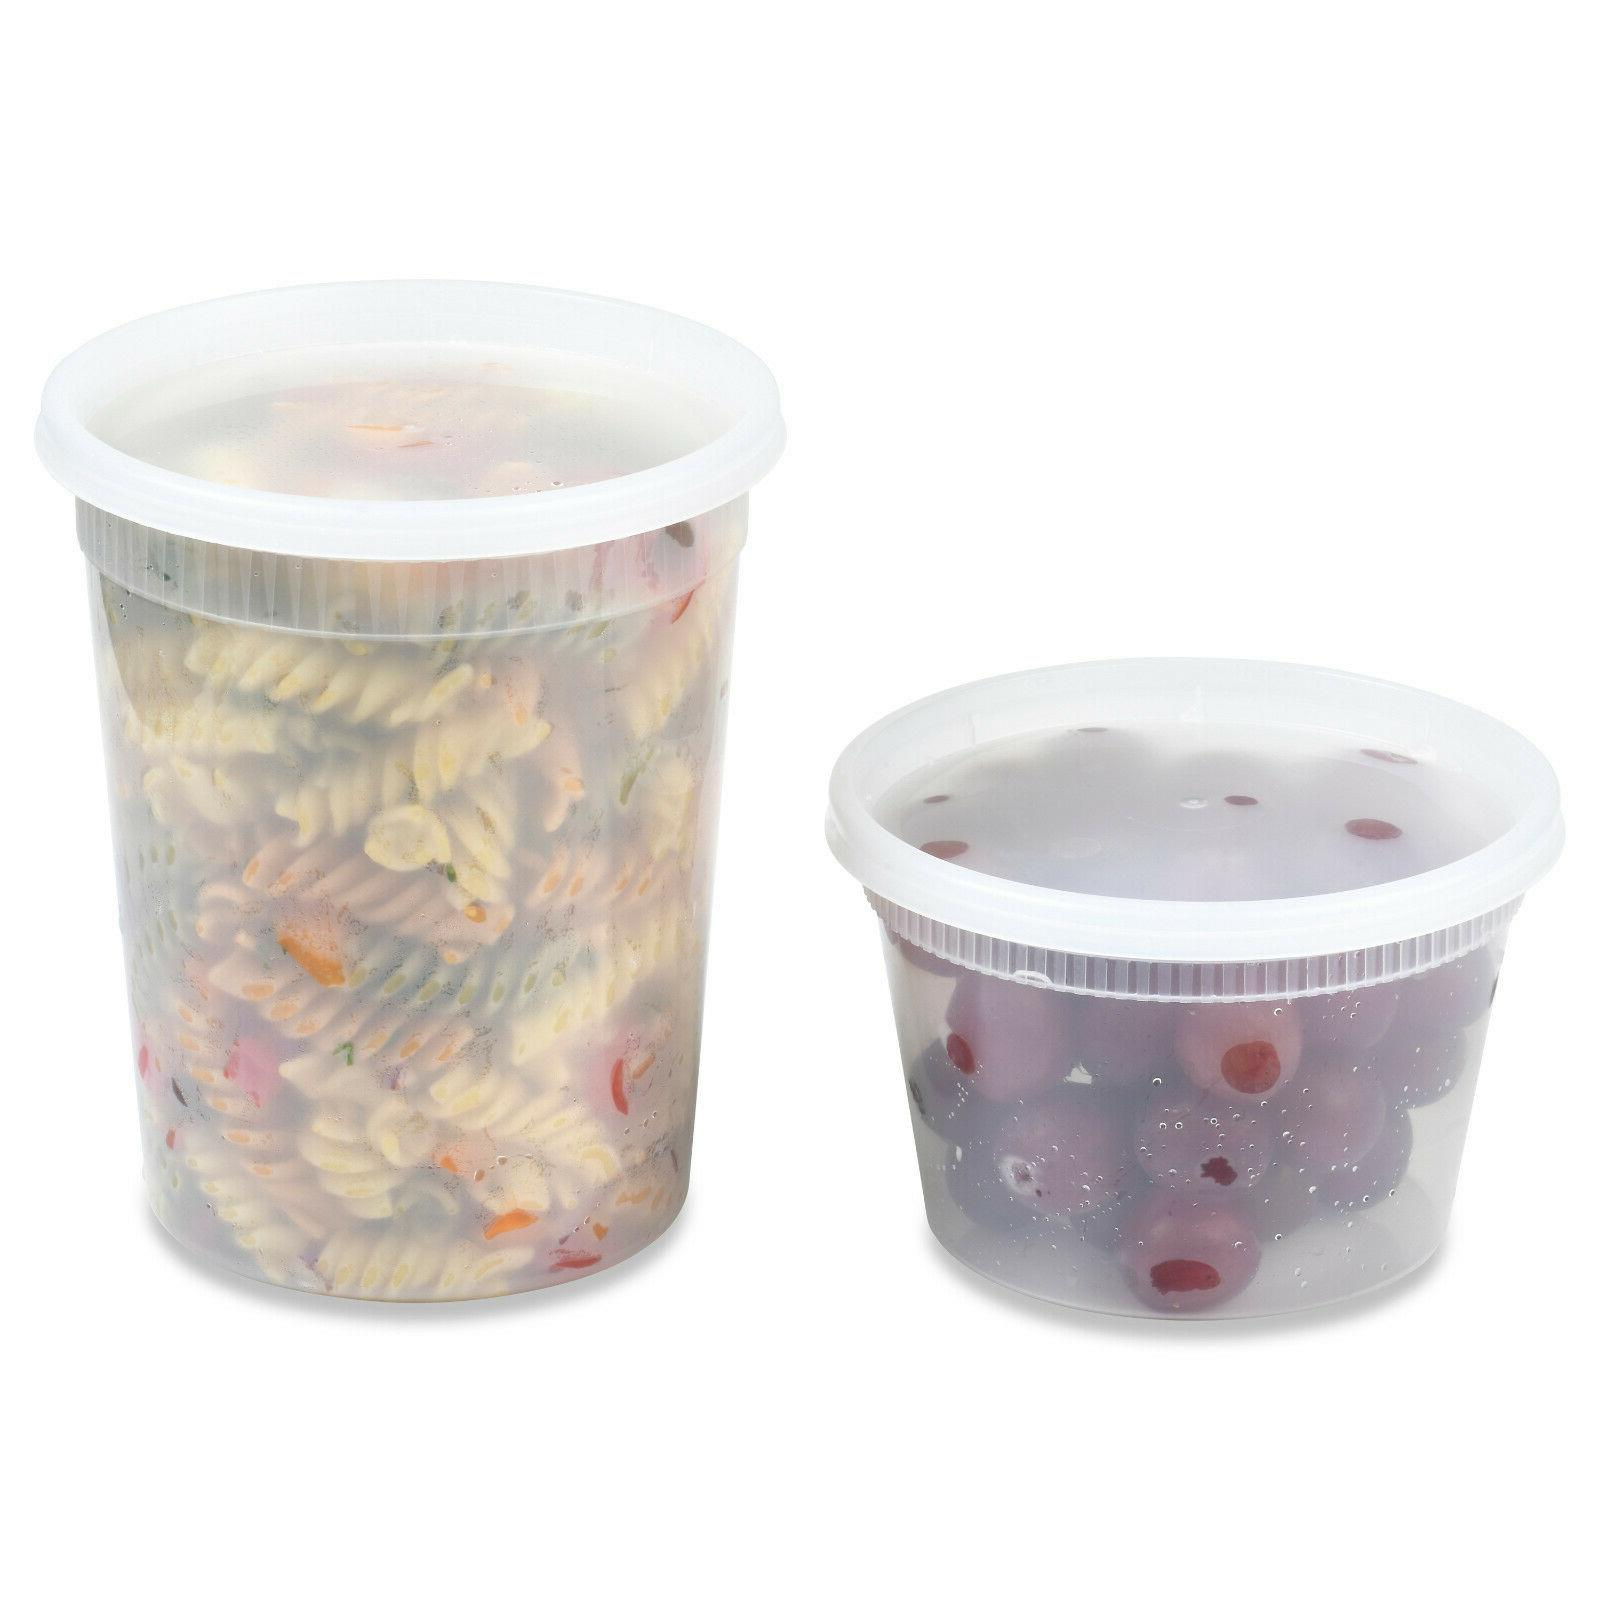 oz Heavy Duty Deli/Soup Containers Made in